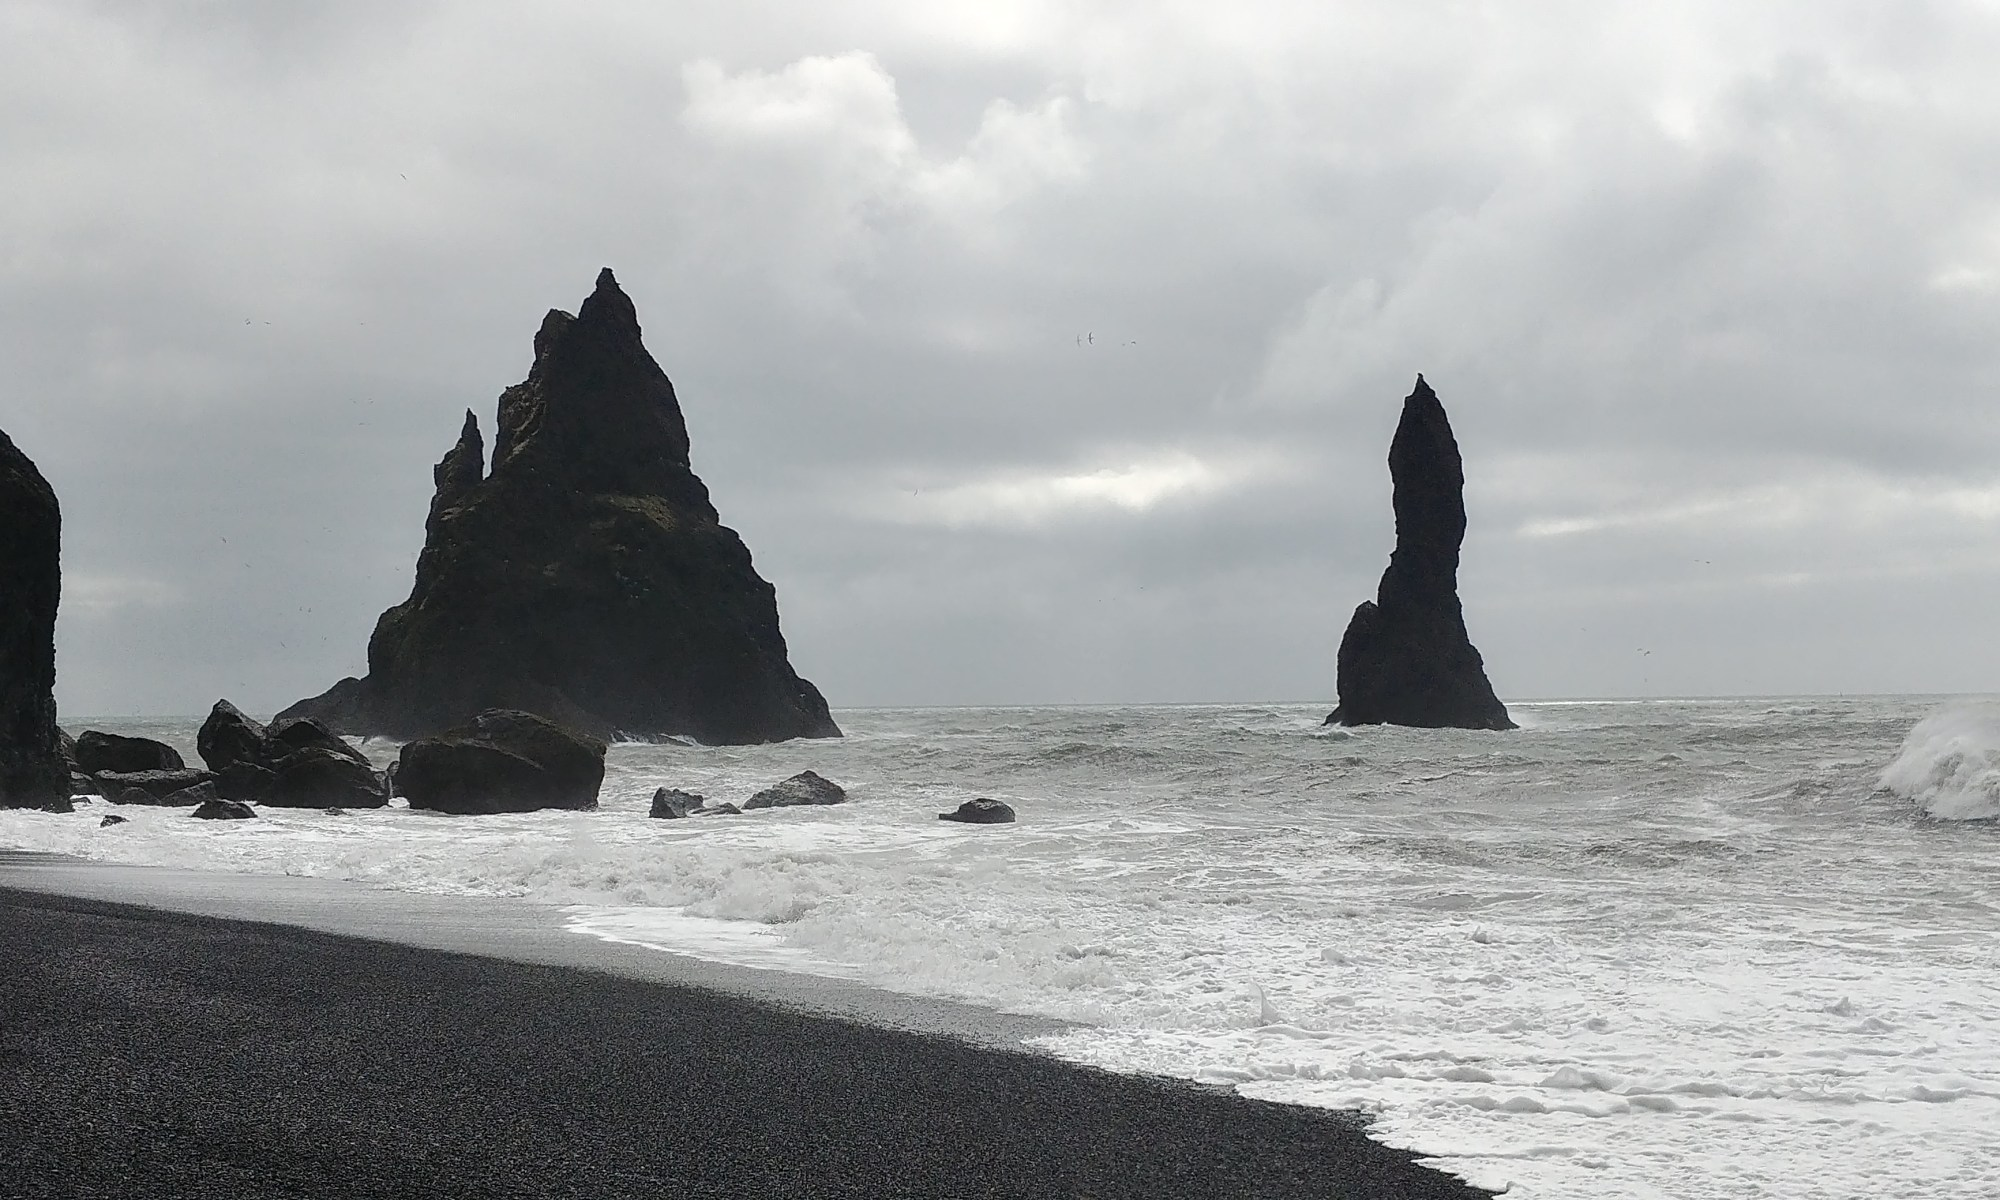 Reynisfjara Black Sand Beach on Iceland